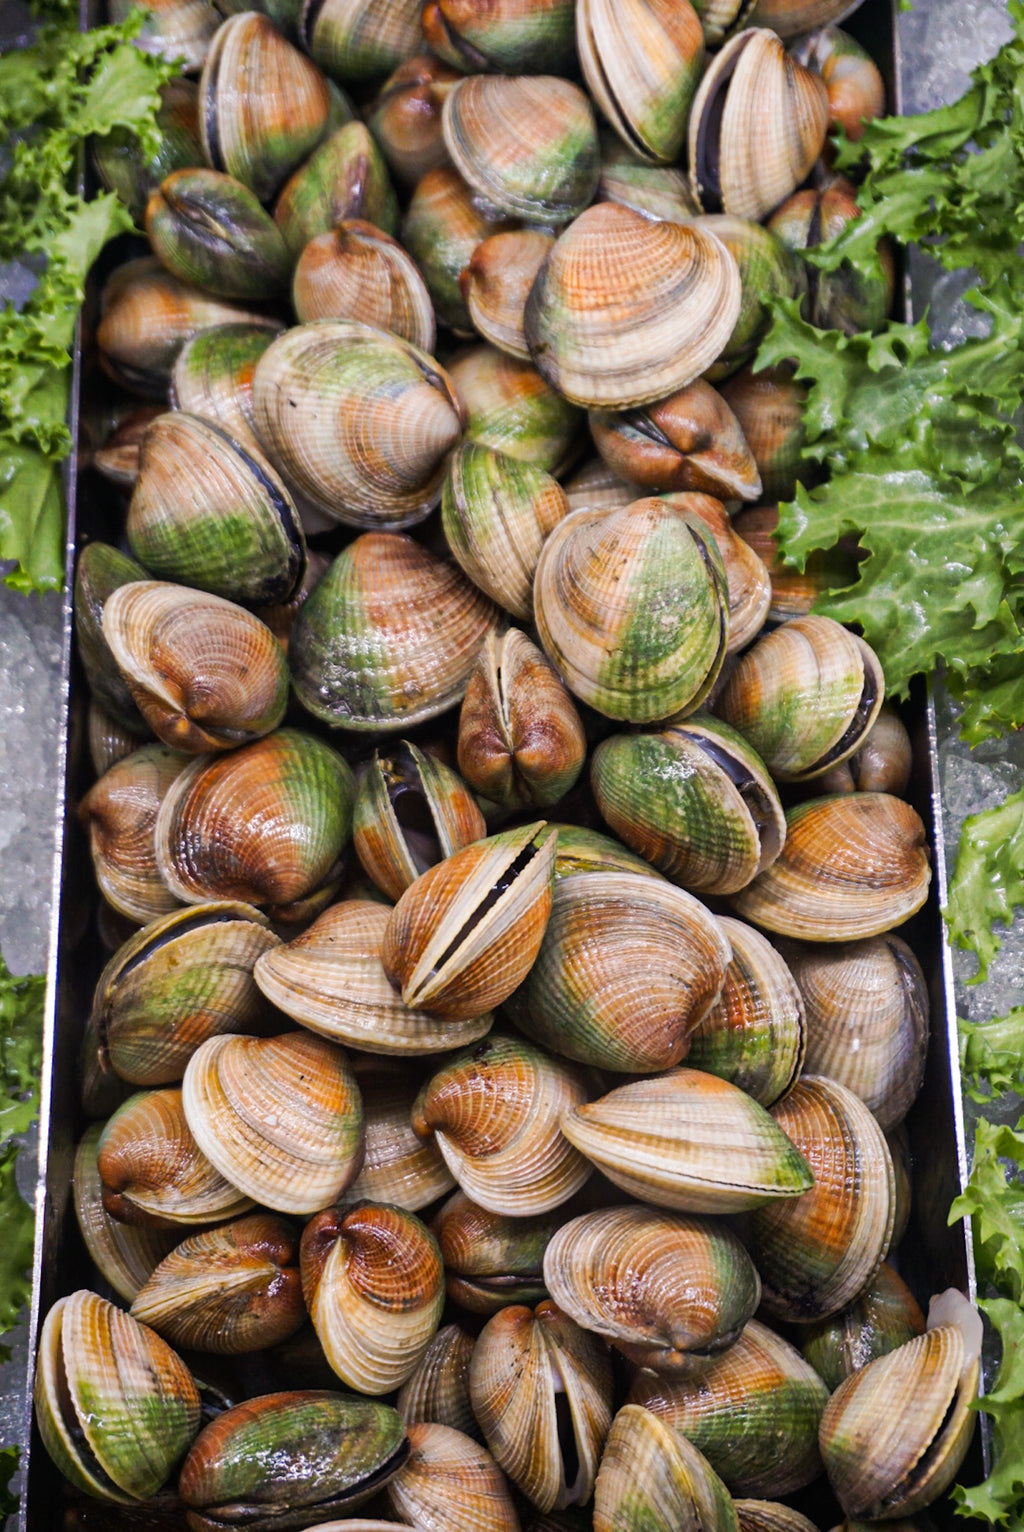 New Zealand Cockles - Park Slope